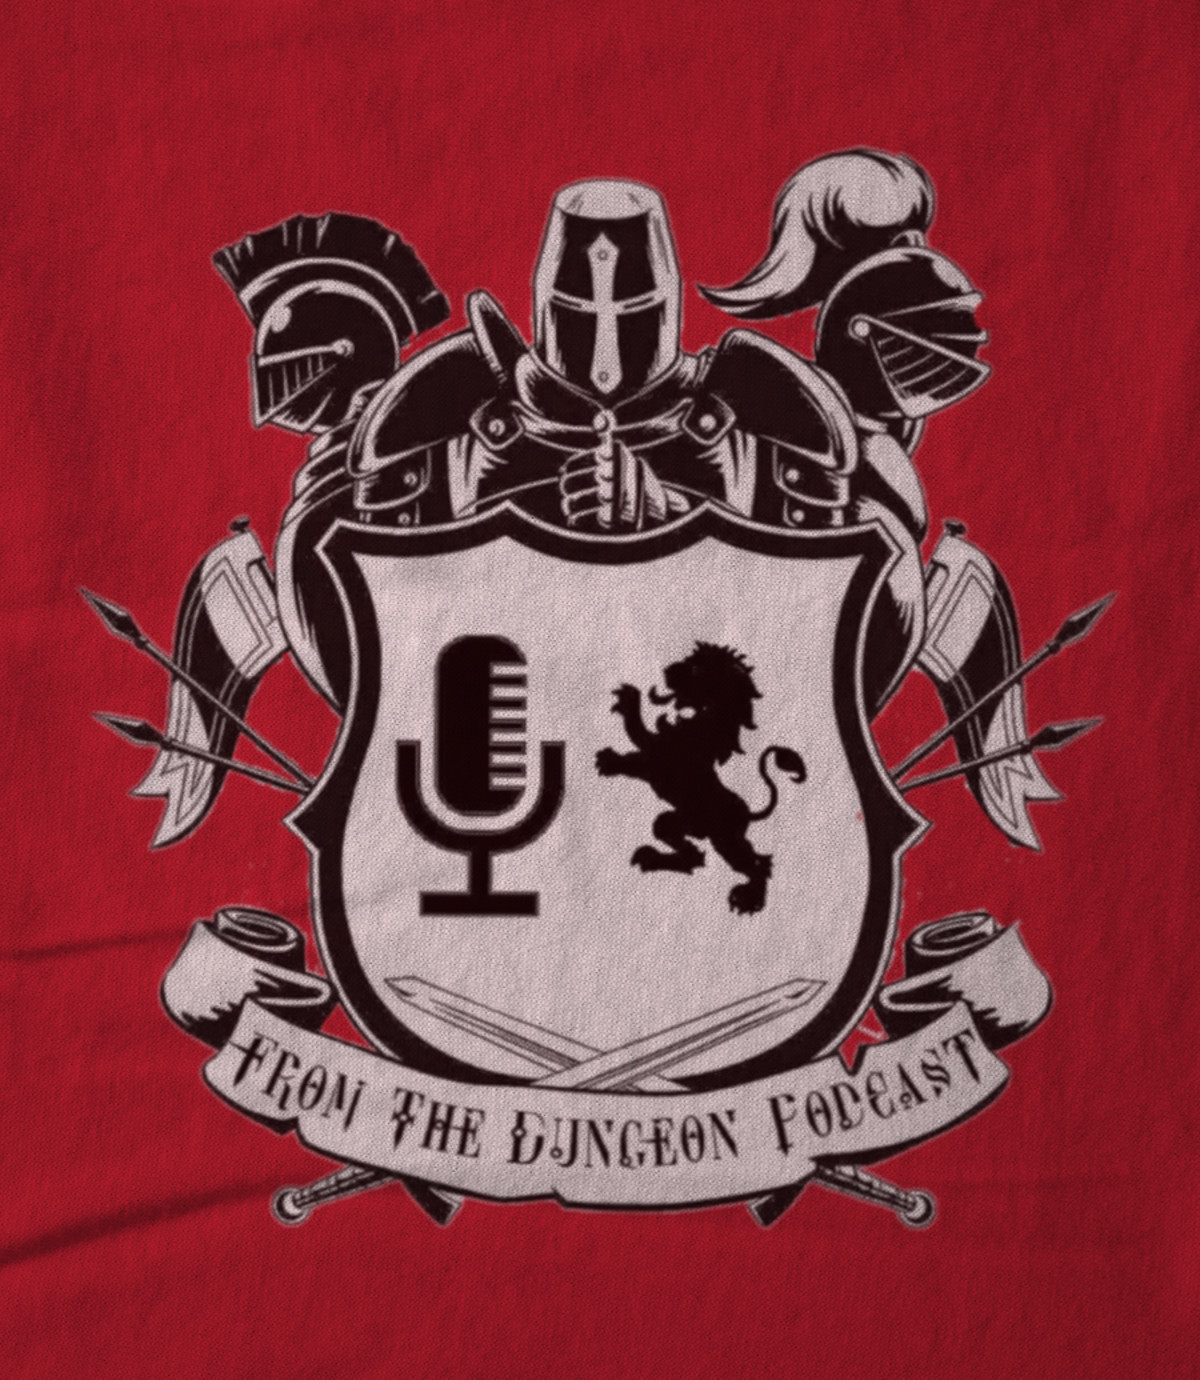 Free m the dungeon podcast  podcast logo 1526833012